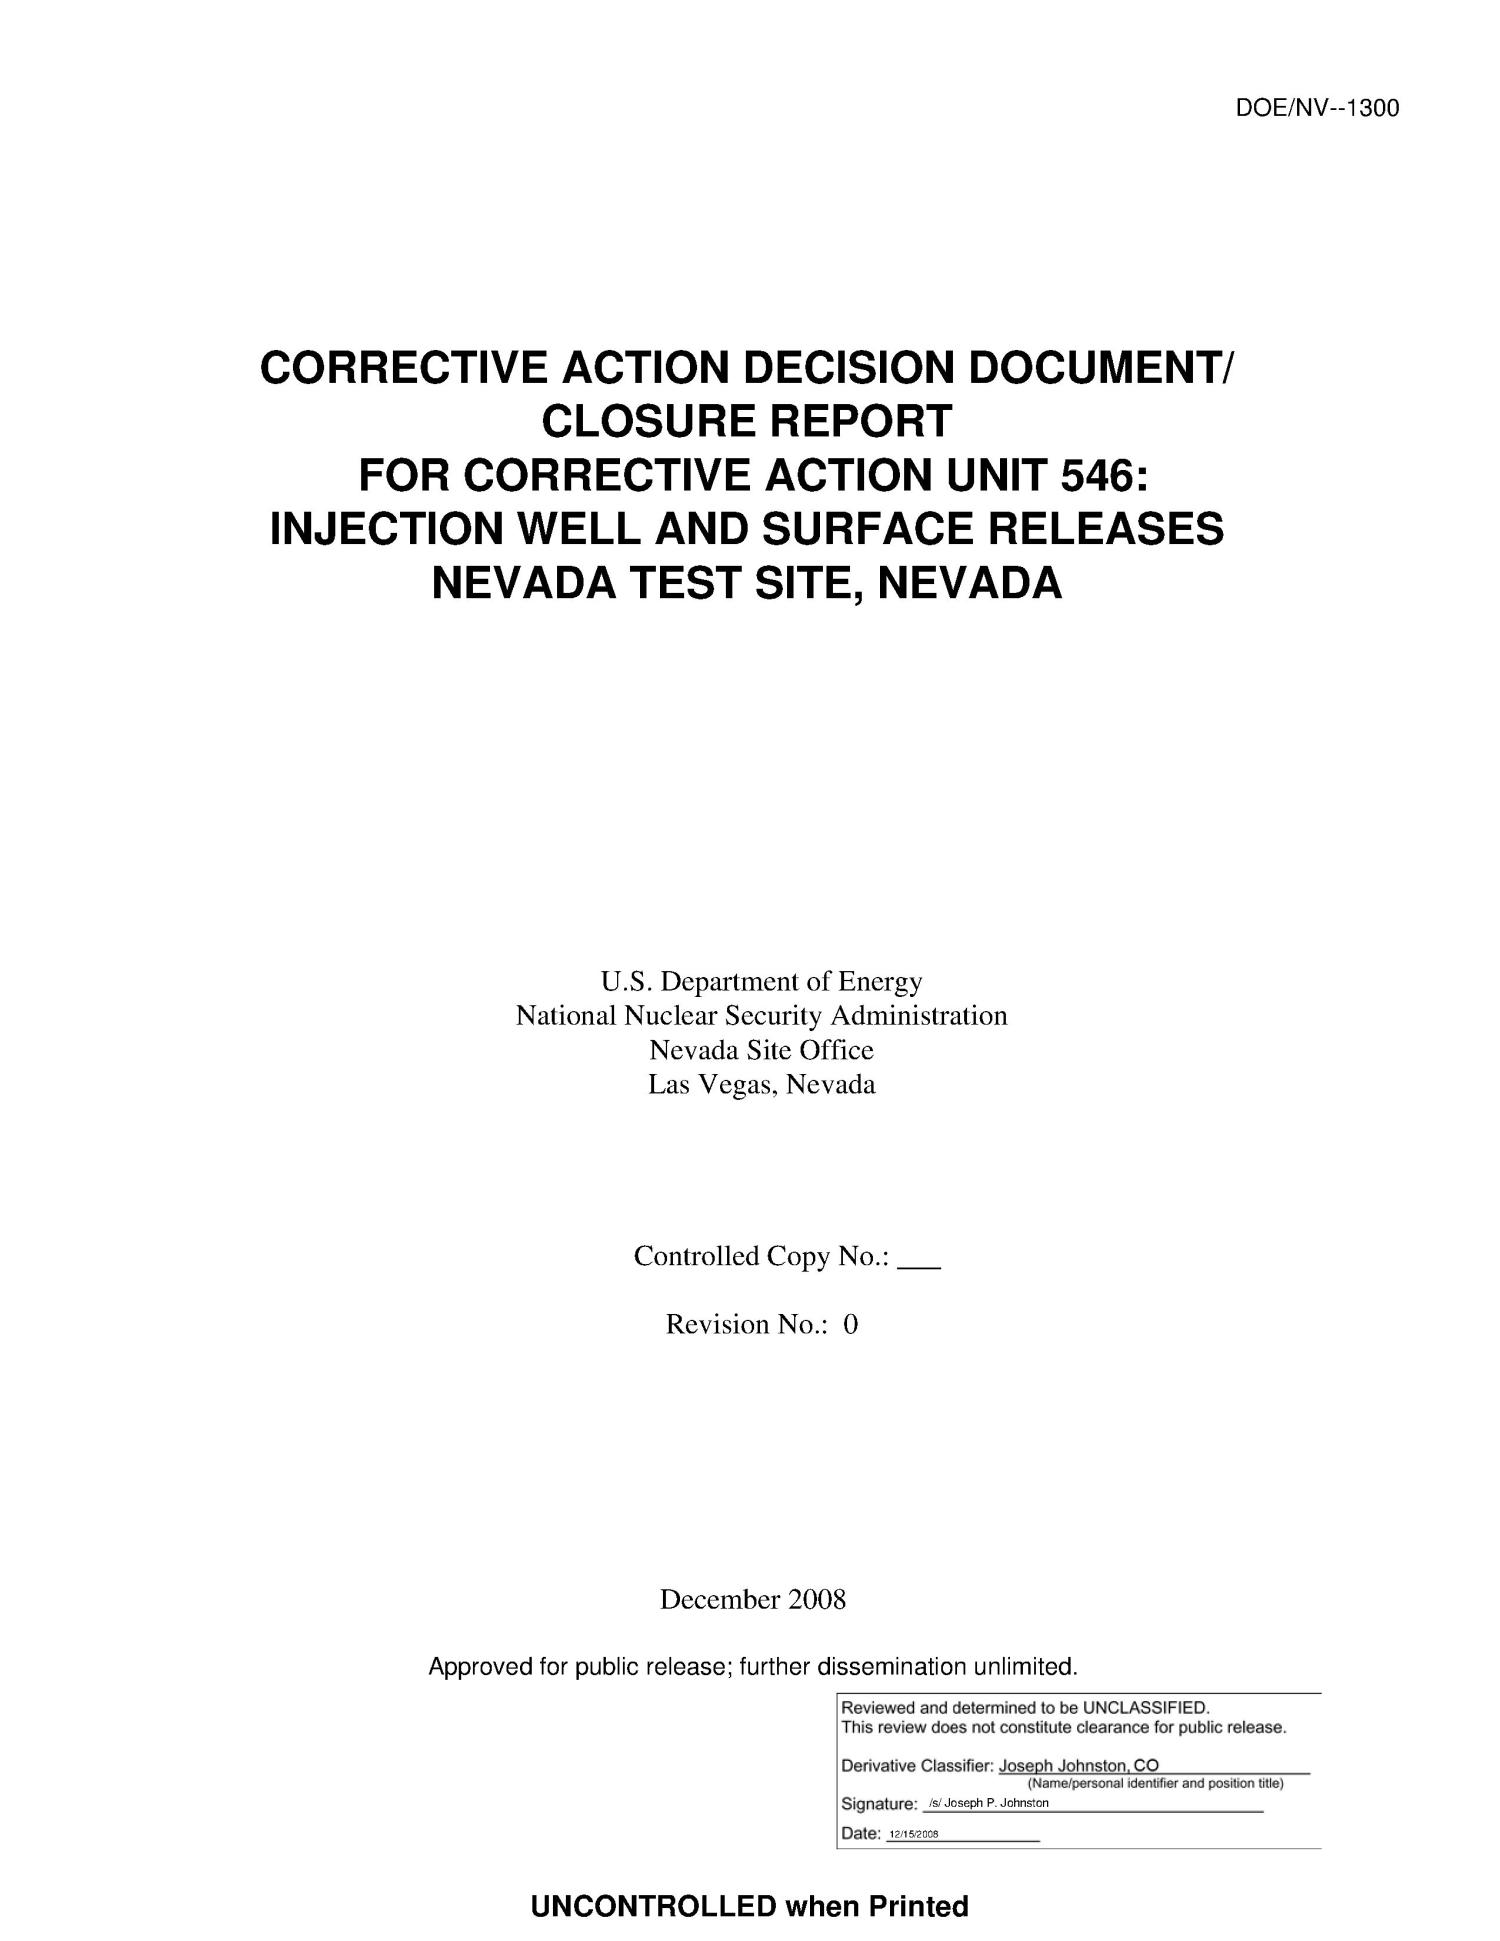 Corrective Action Decision Document/Closure Report for Corrective Action Unit 546: Injection Well and Surface Releases Nevada Test Site, Nevada, Revision 0                                                                                                      [Sequence #]: 3 of 171